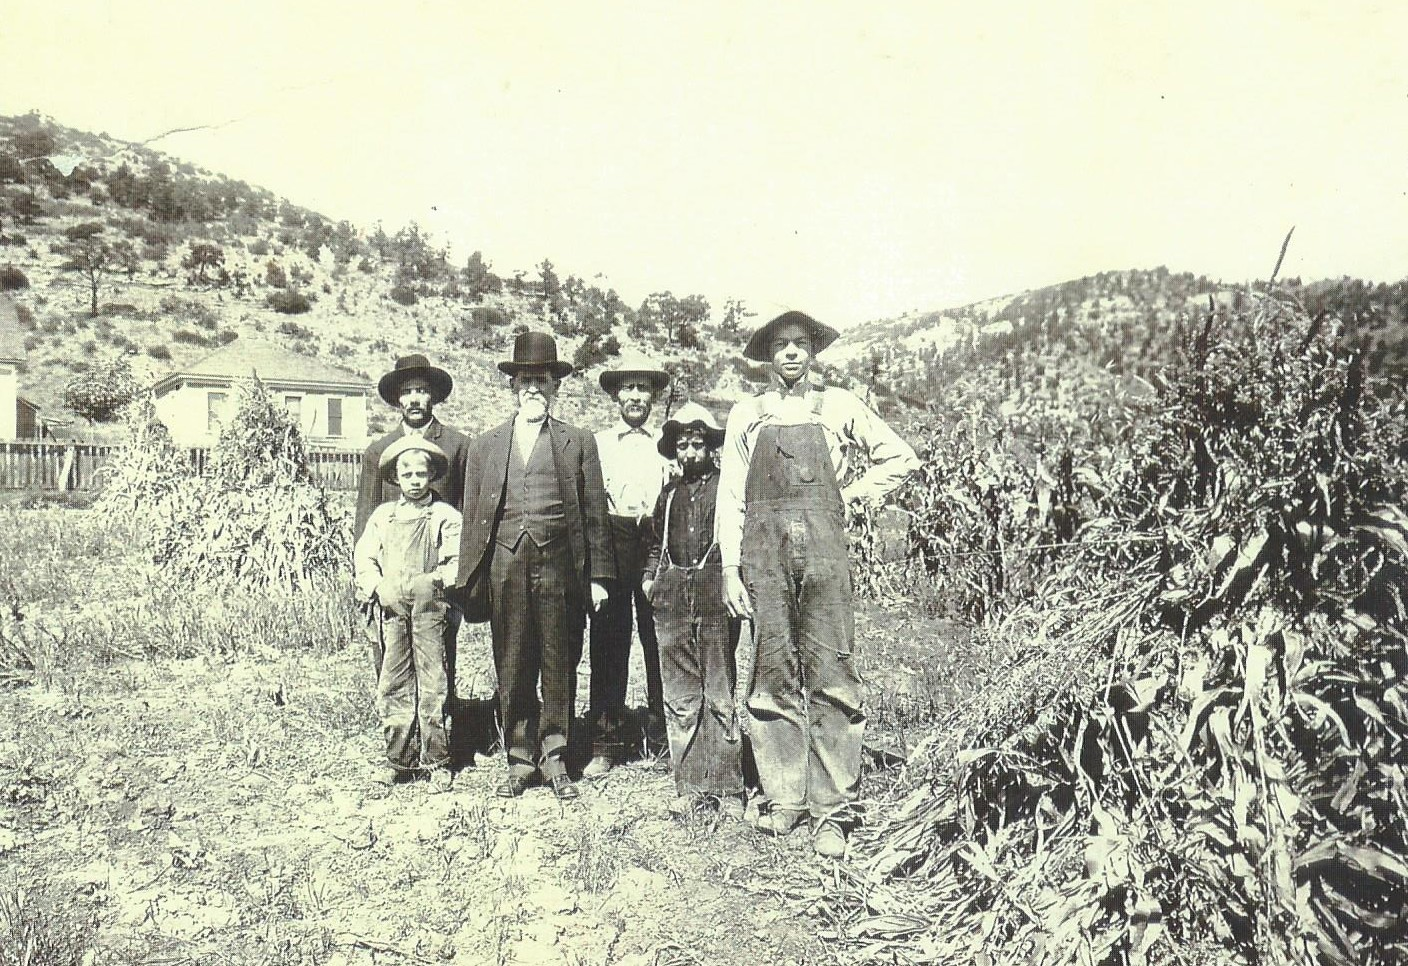 Writing a biography on my great-grandfather, in the hat and white shirt in the middle, helped me grow closer to my family. Kids can do the same as they interview family and write biographies!